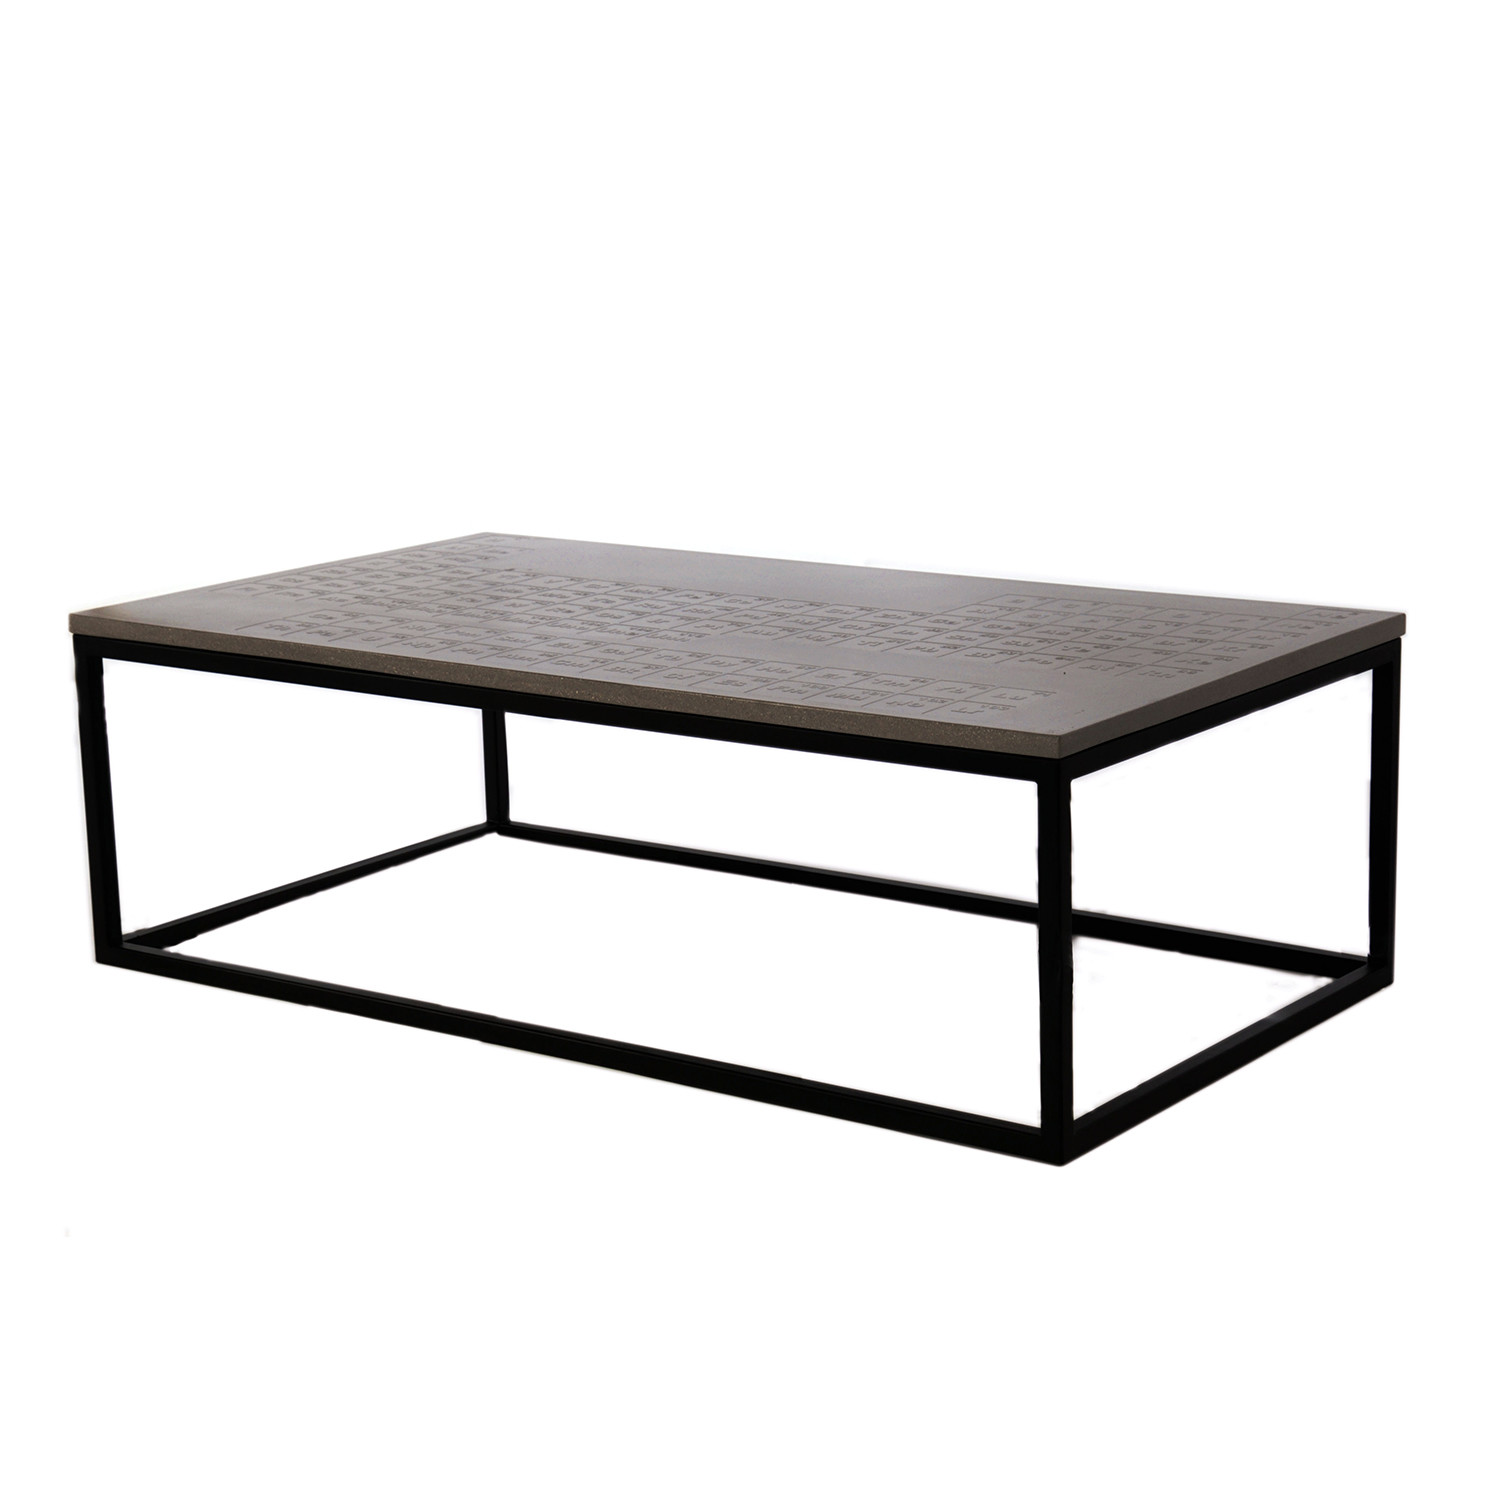 periodic coffee table james dewulf touch of modern. Black Bedroom Furniture Sets. Home Design Ideas